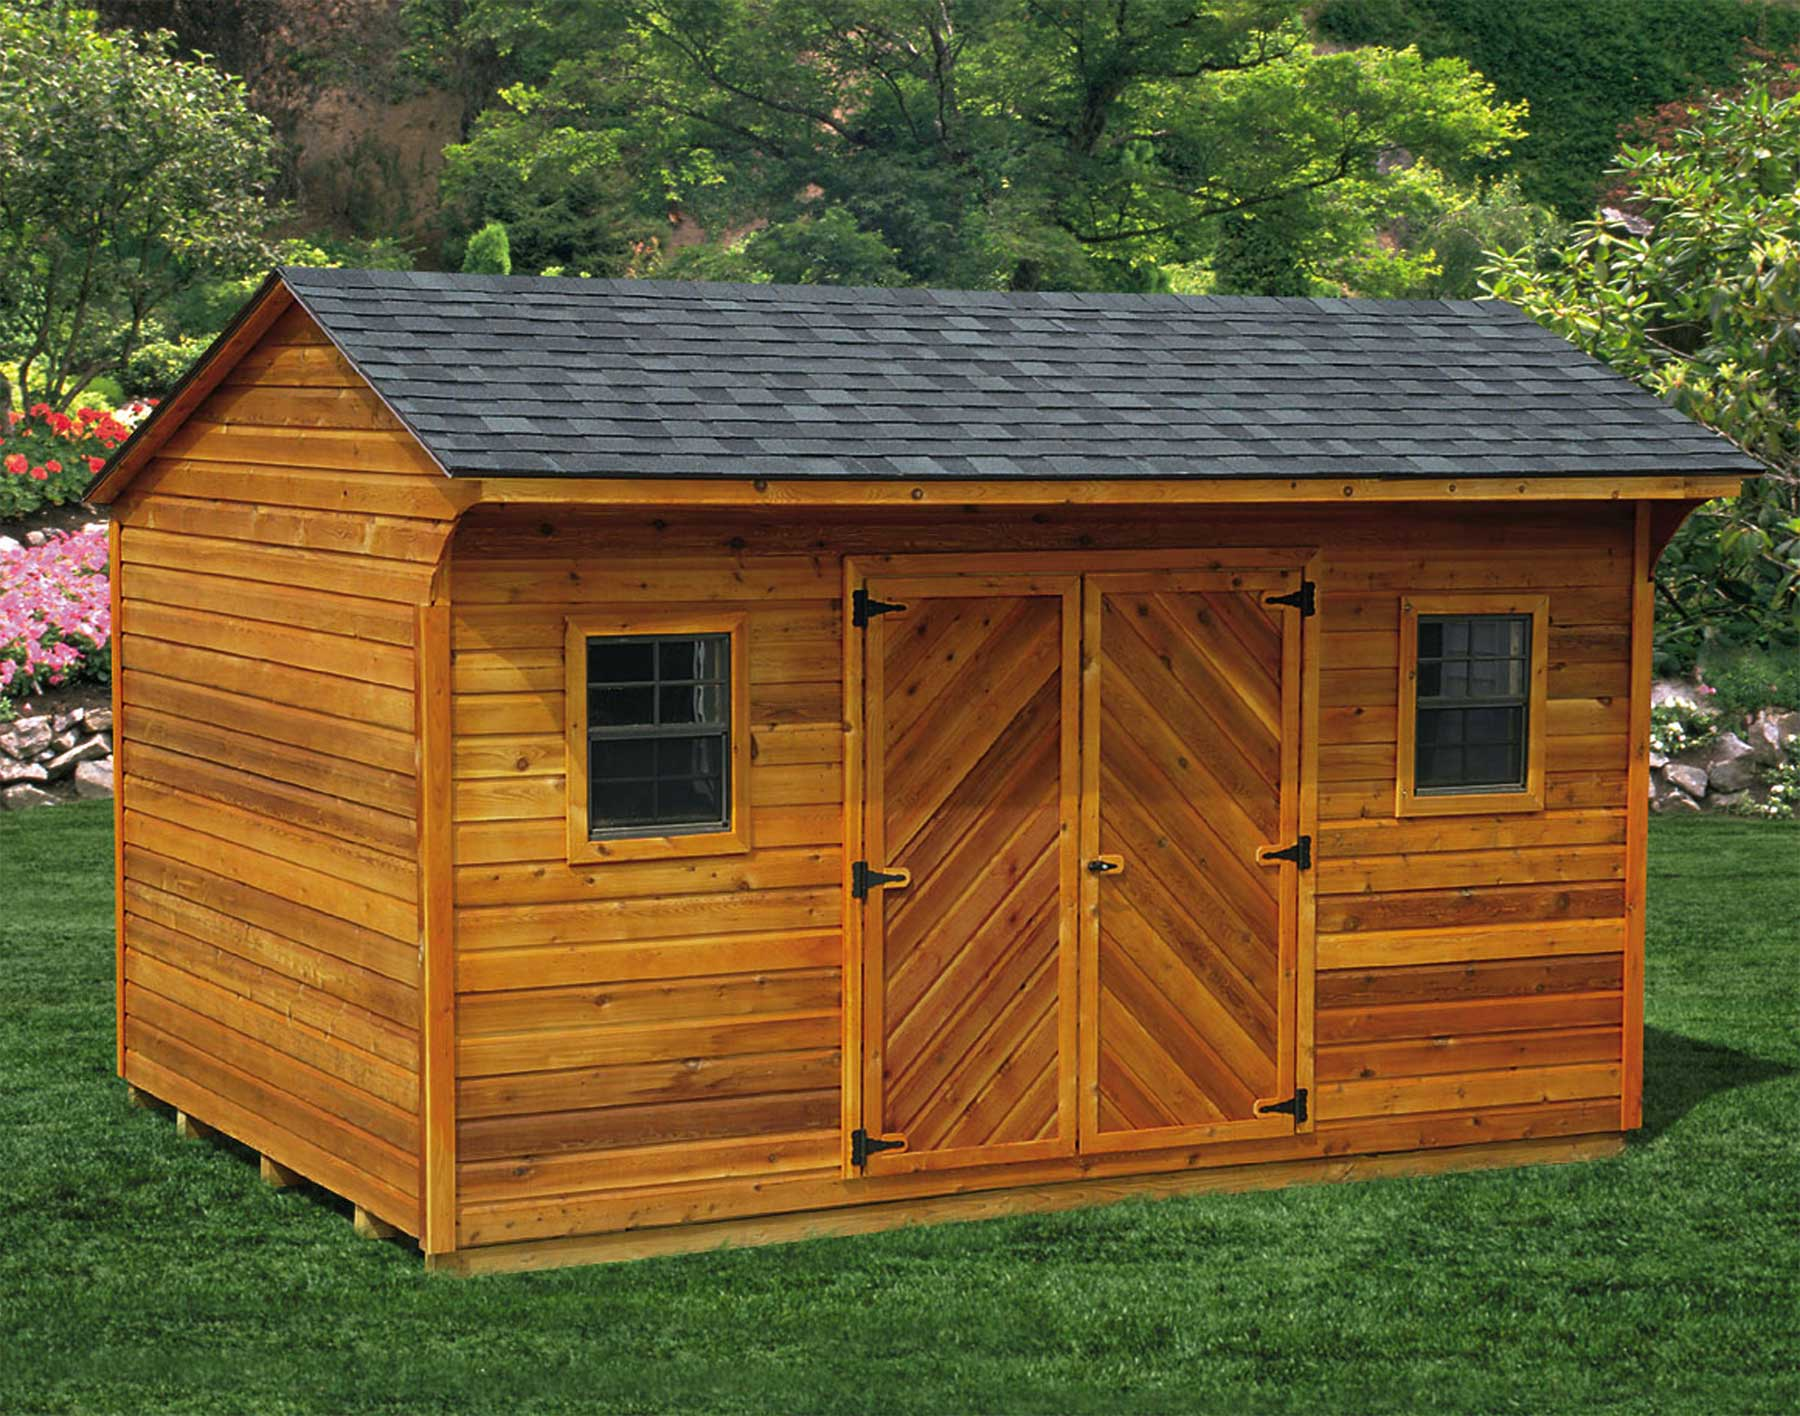 Naumi yard storage sheds guide - Garden sheds michigan ...